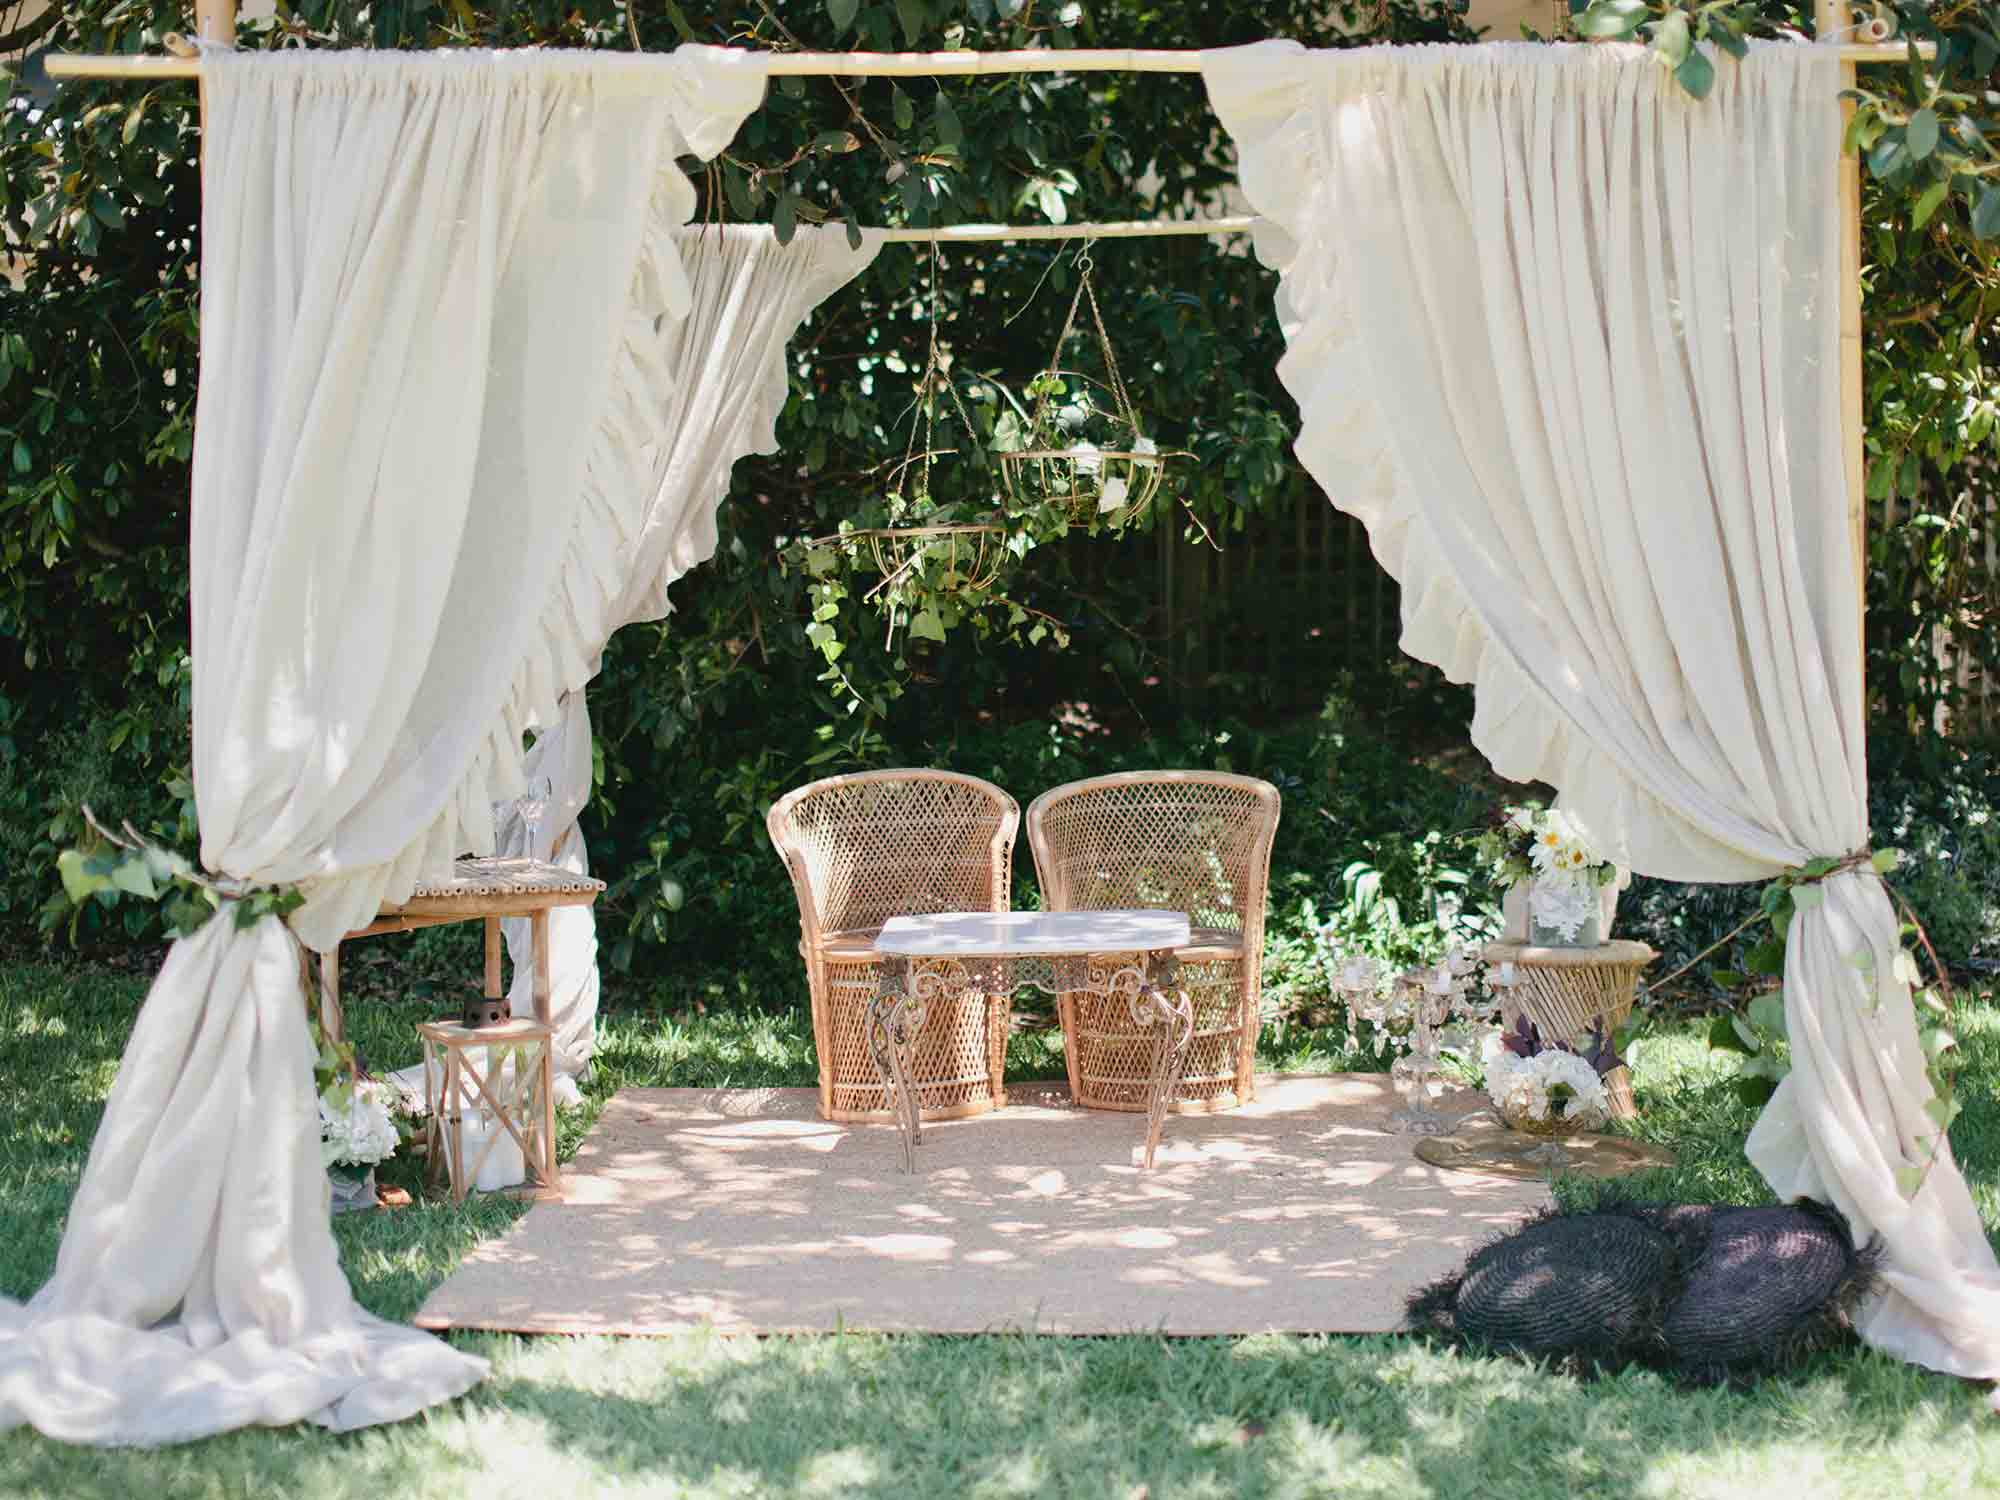 How To Decorate Your Backyard For An Engagement Party throughout 13 Some of the Coolest Ways How to Upgrade Backyard Engagement Party Decorations